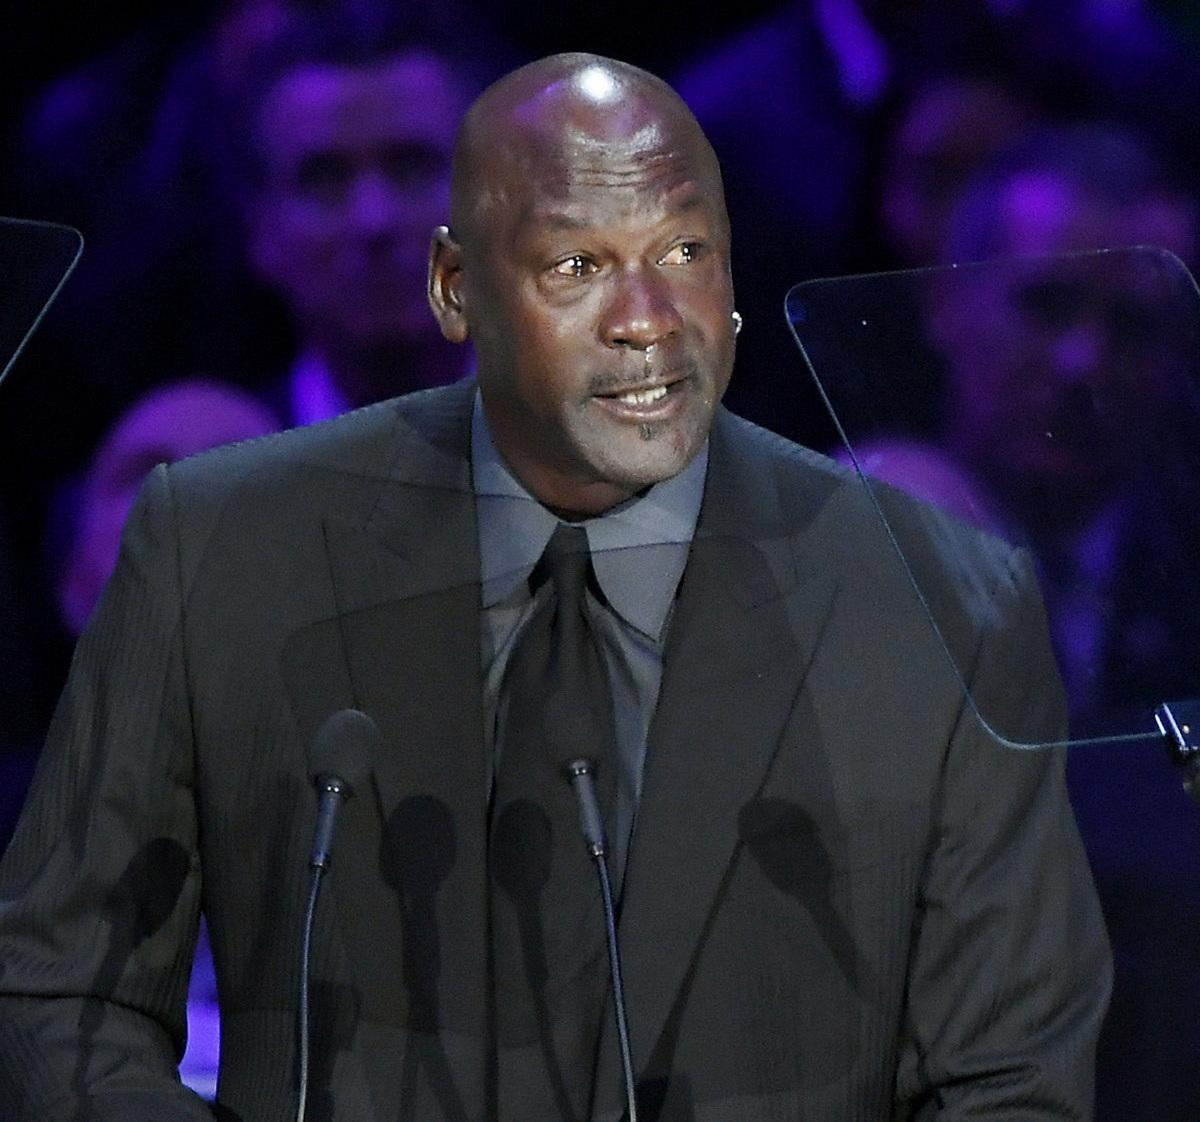 Michael Jordan: 'You're Going to Think I'm a Horrible Guy' on 'The Last Dance'